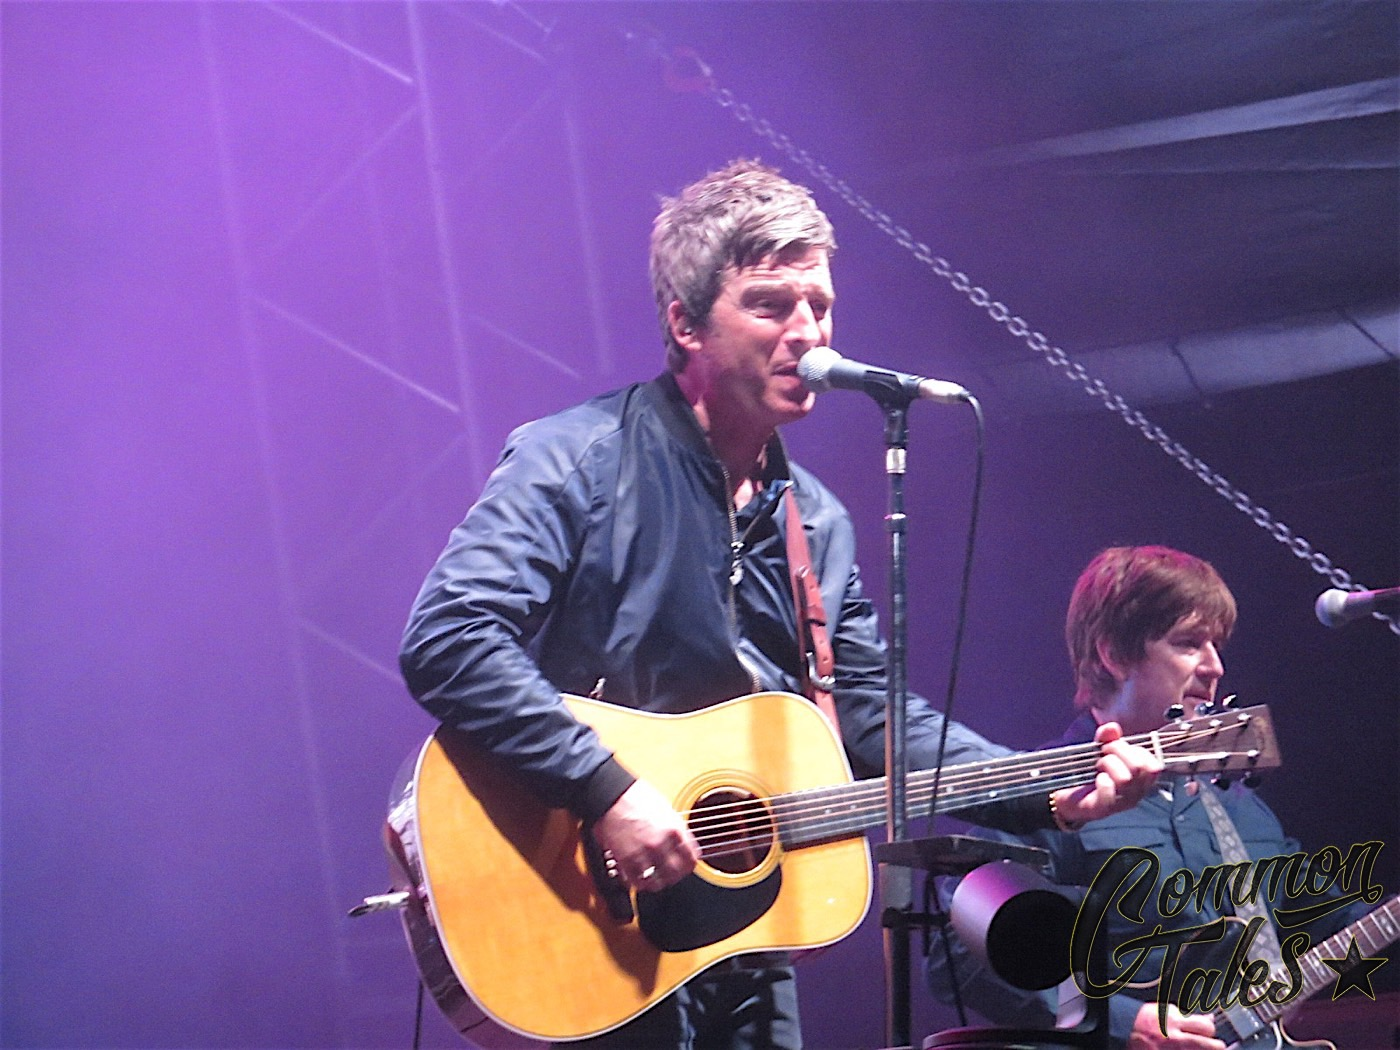 Noel Gallagher @ A Summer's Tale 2016